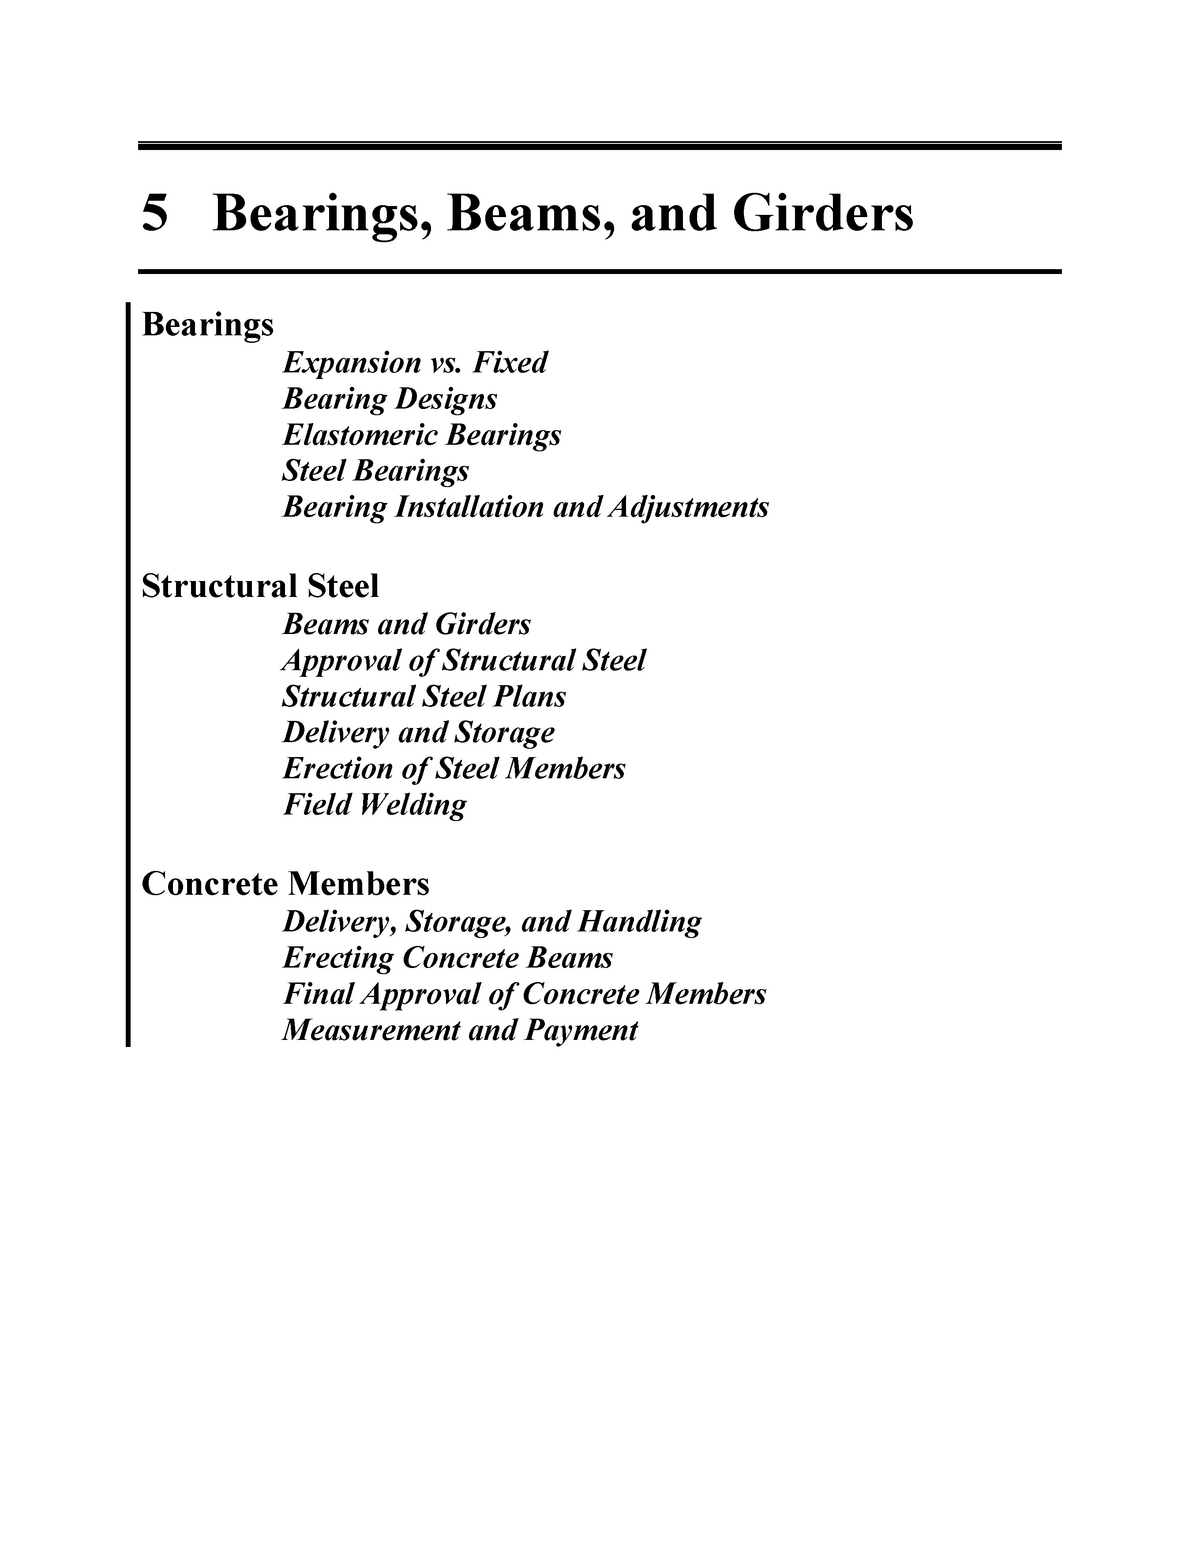 Bridge Design - Chapter 5 - Bearings Beams and Girders - Structural